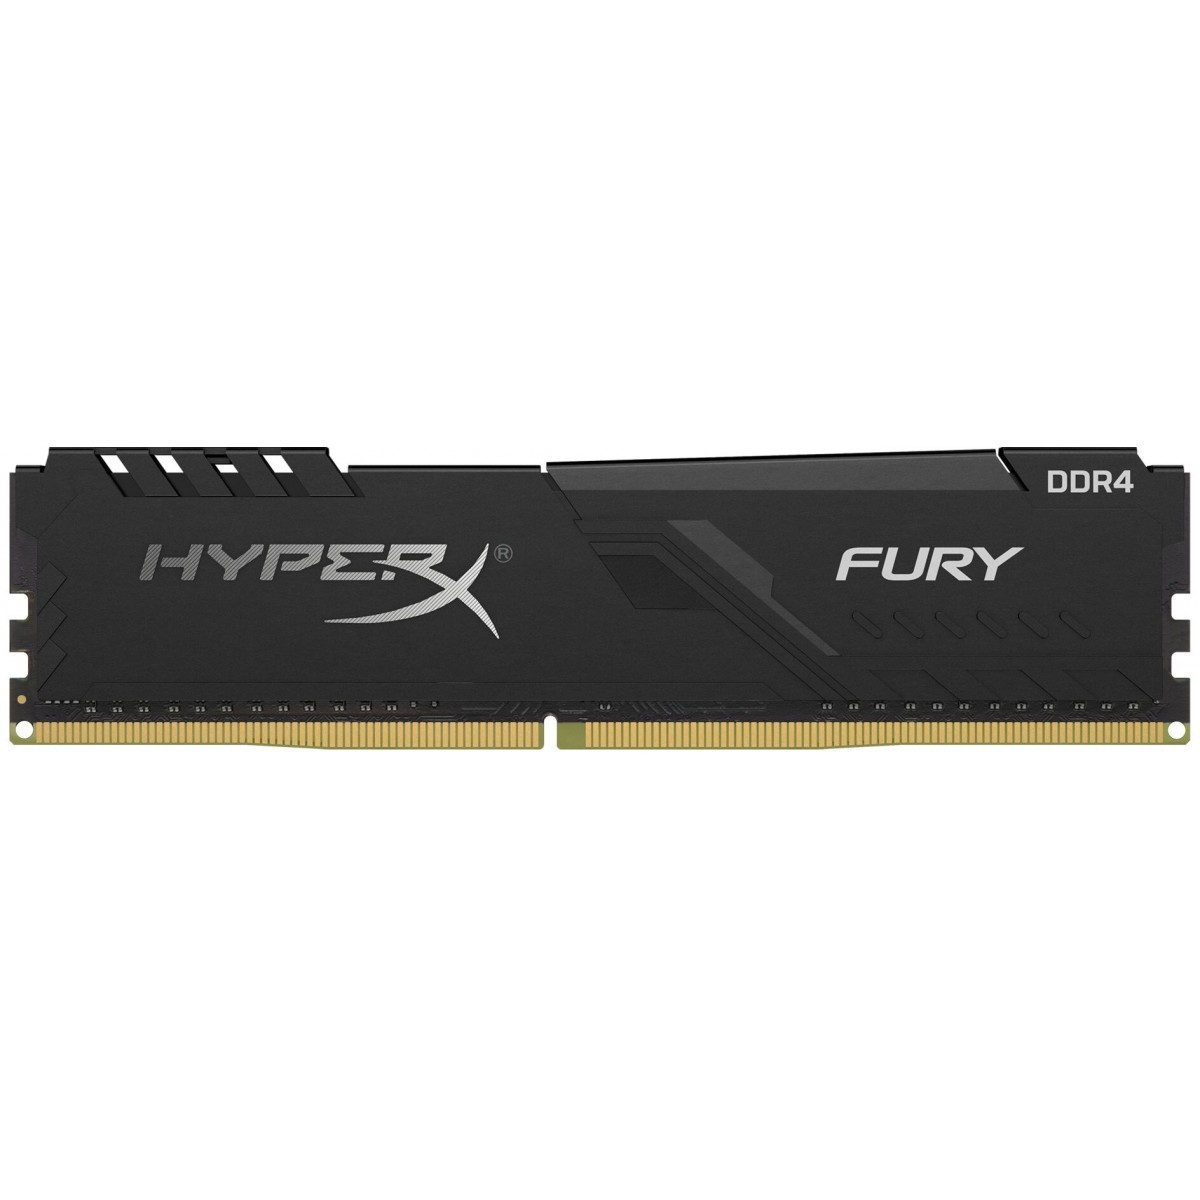 Memória DDR4 Kingston HyperX Fury, 8GB 3200MHz, Black, HX432C16FB3/8